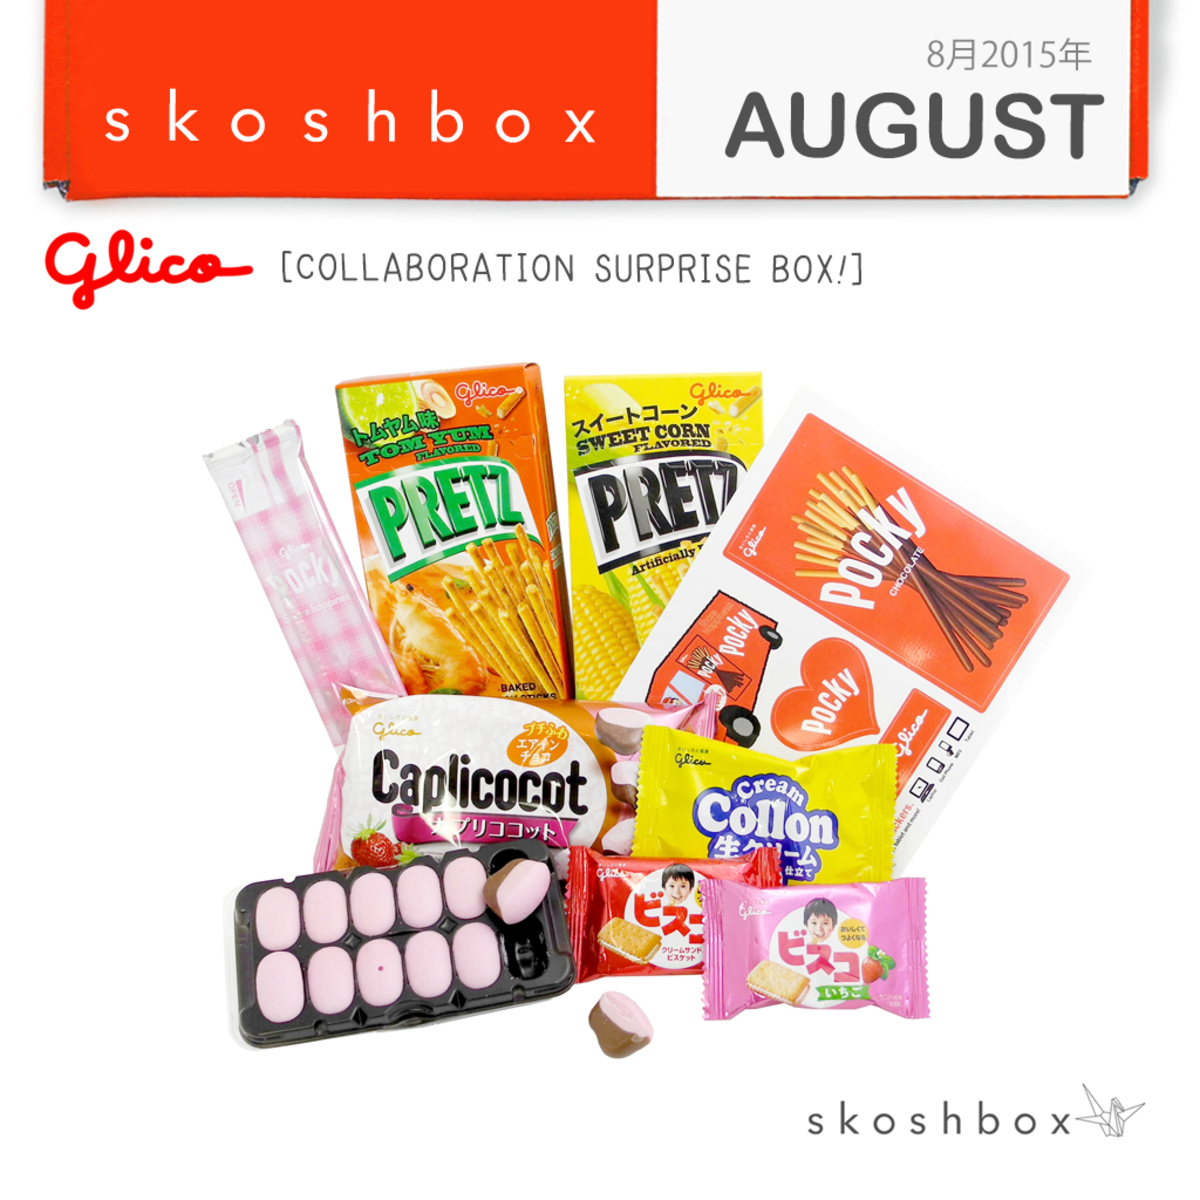 August's Skoshbox